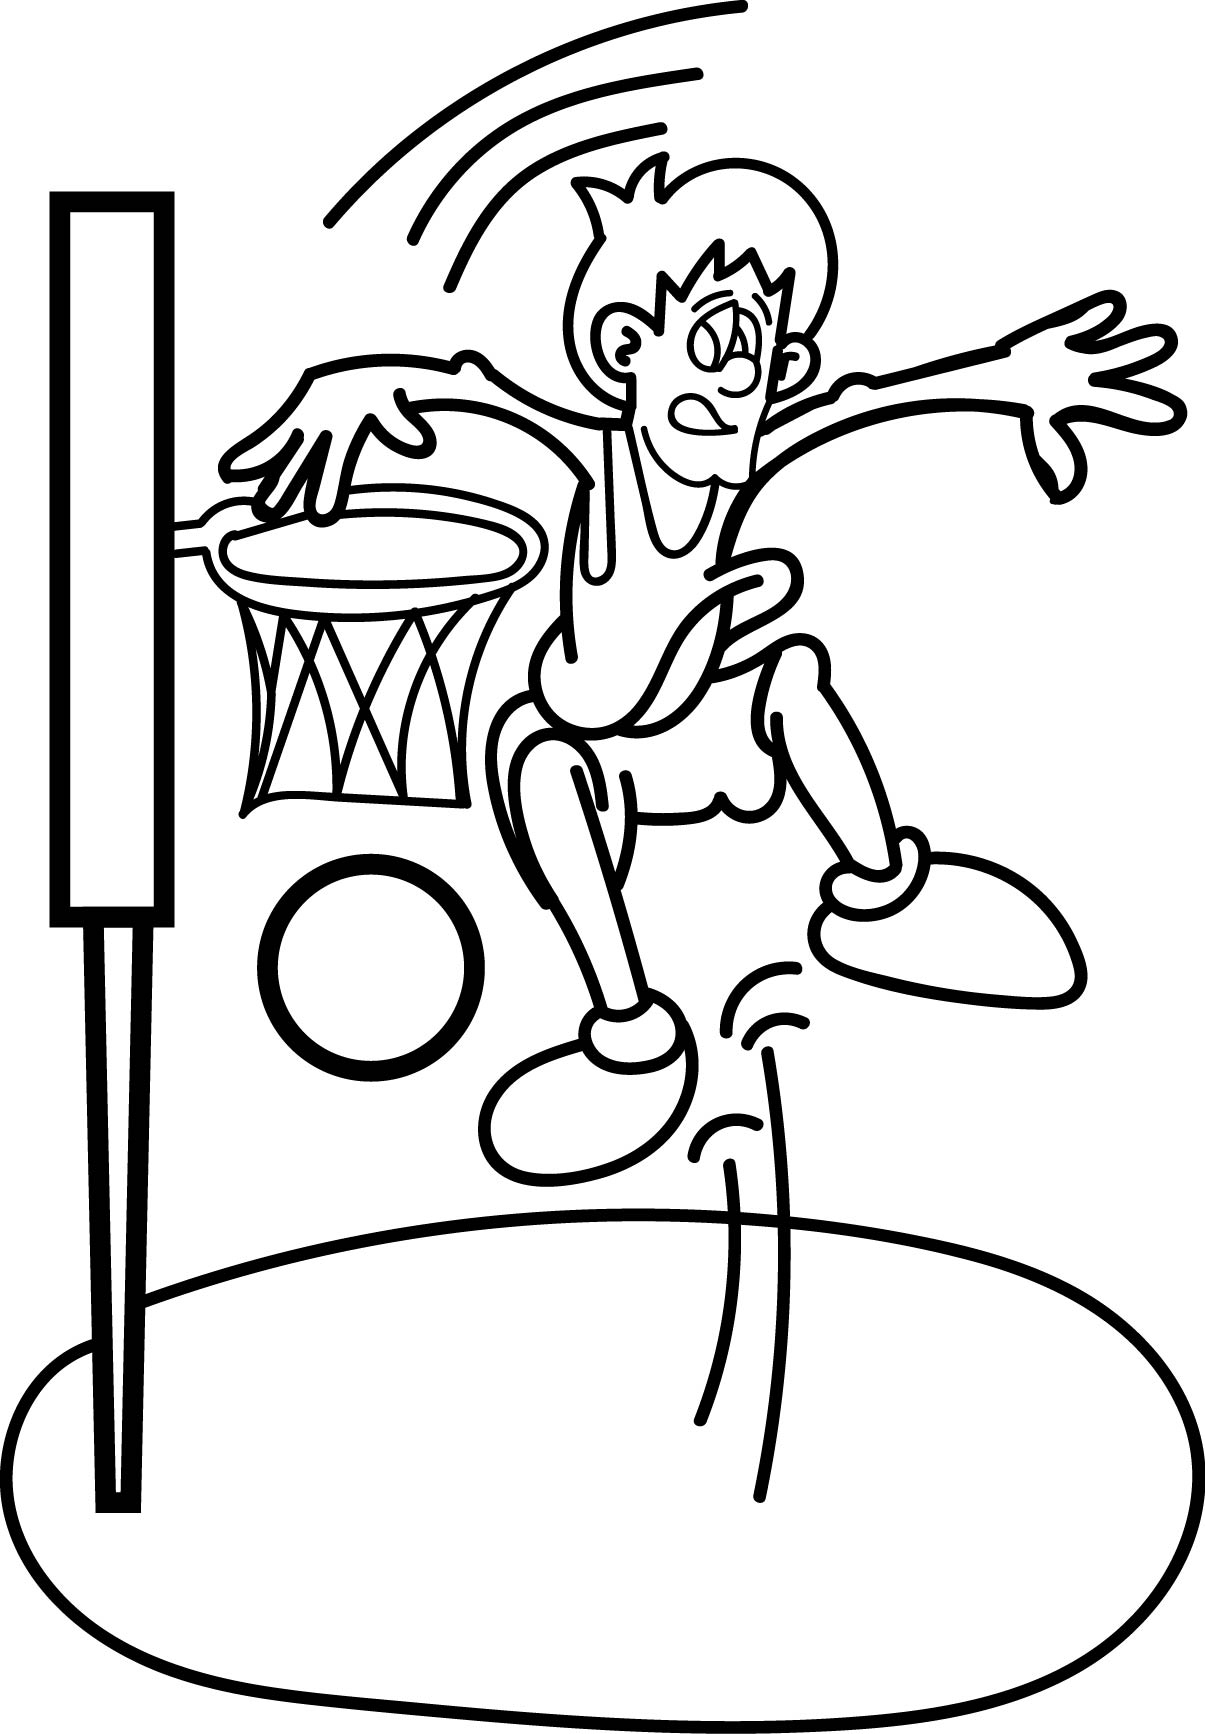 1205x1734 Coloring Pages Kd Shoes Best Best Kevin Durant Shoes Gallery